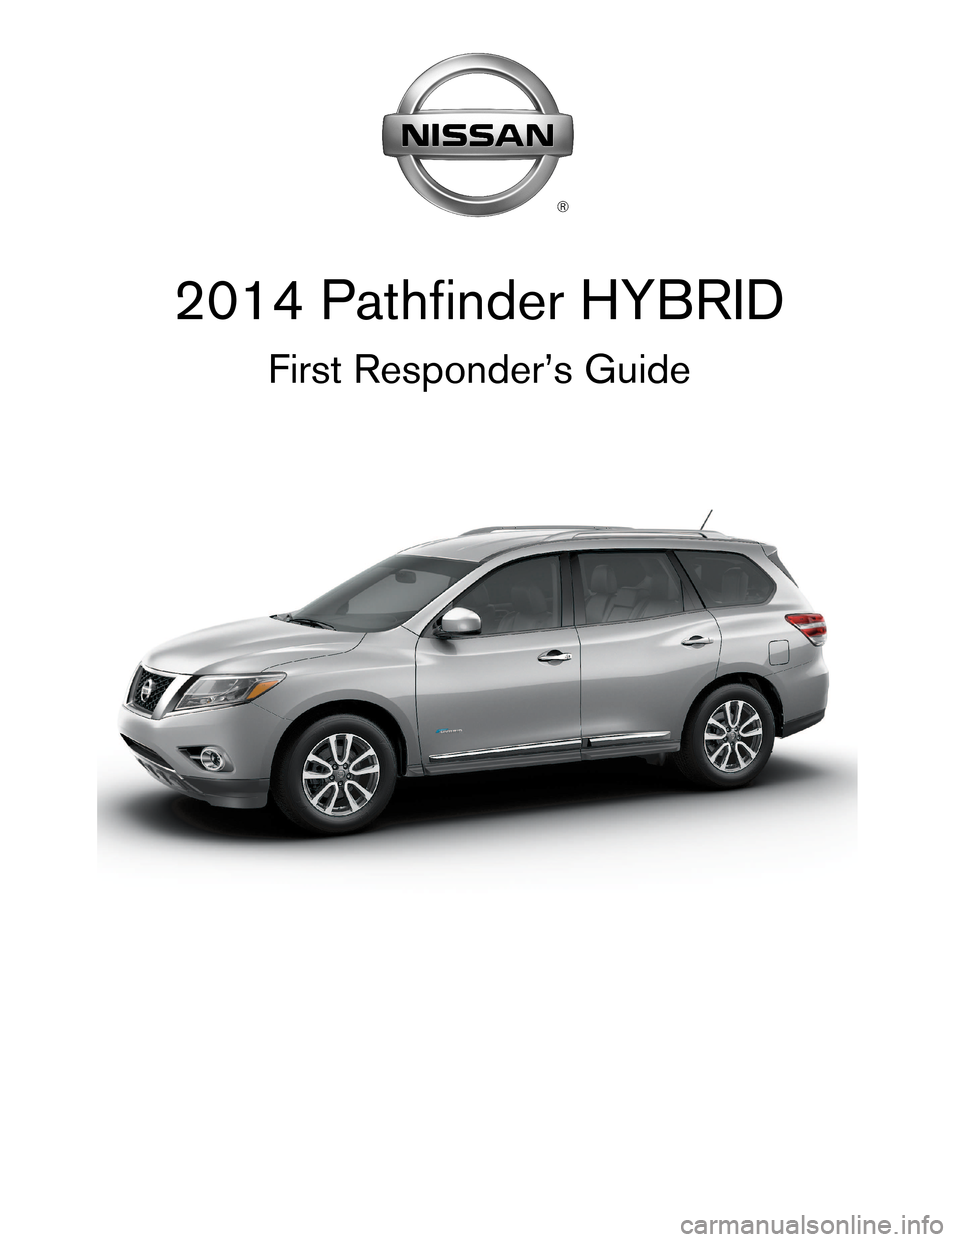 NISSAN PATHFINDER HYBRID 2014 R52 / 4.G First Responders Guide, Page 1